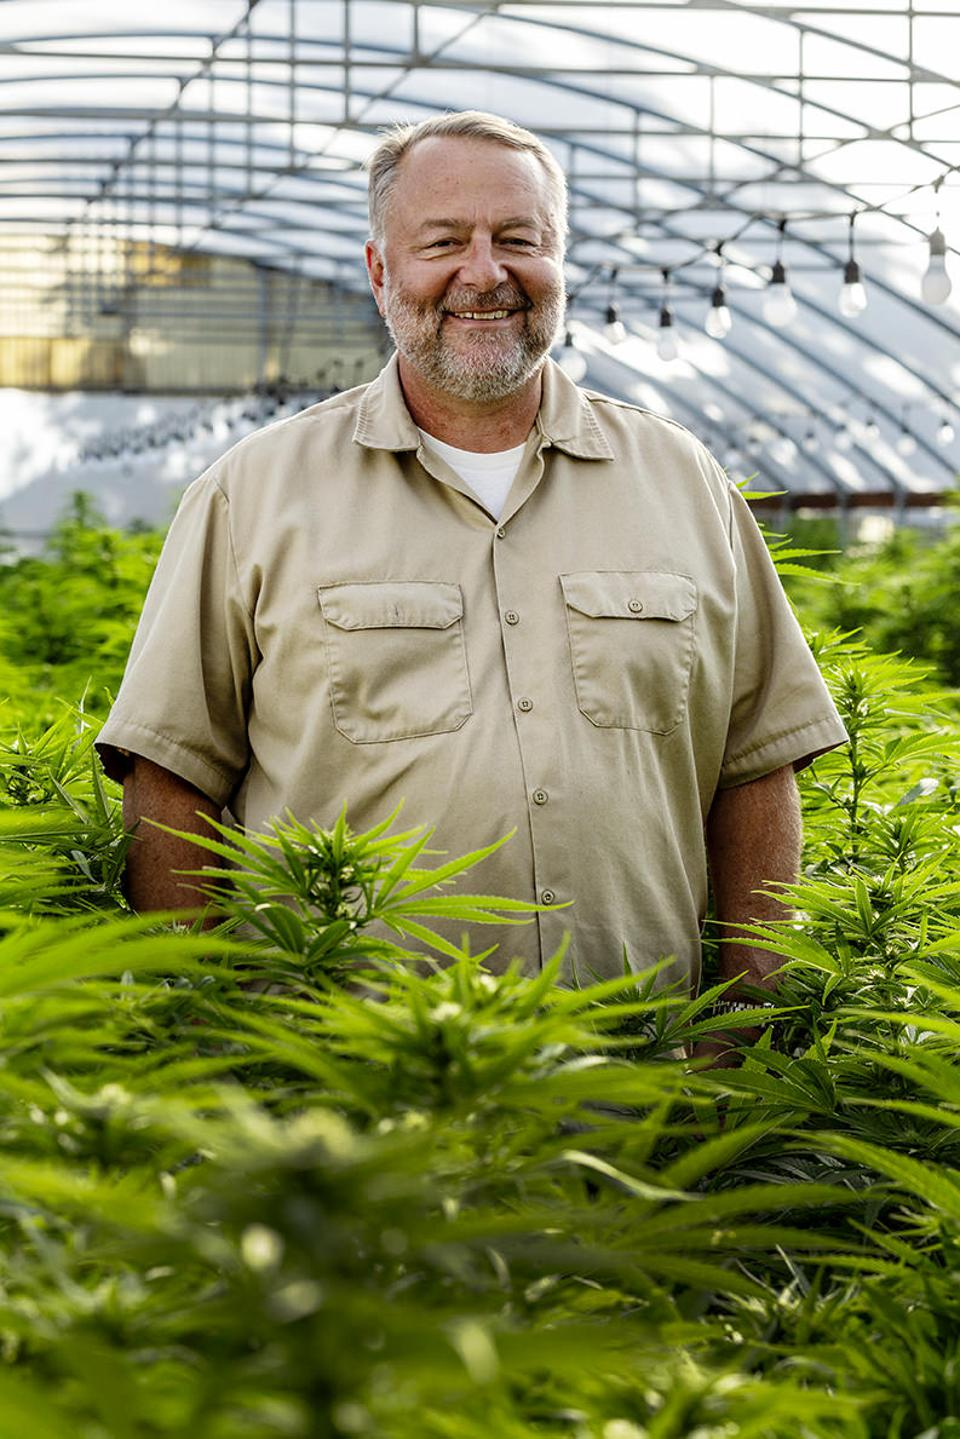 man in a greenhouse surrounded by vibrant green cannabis plants